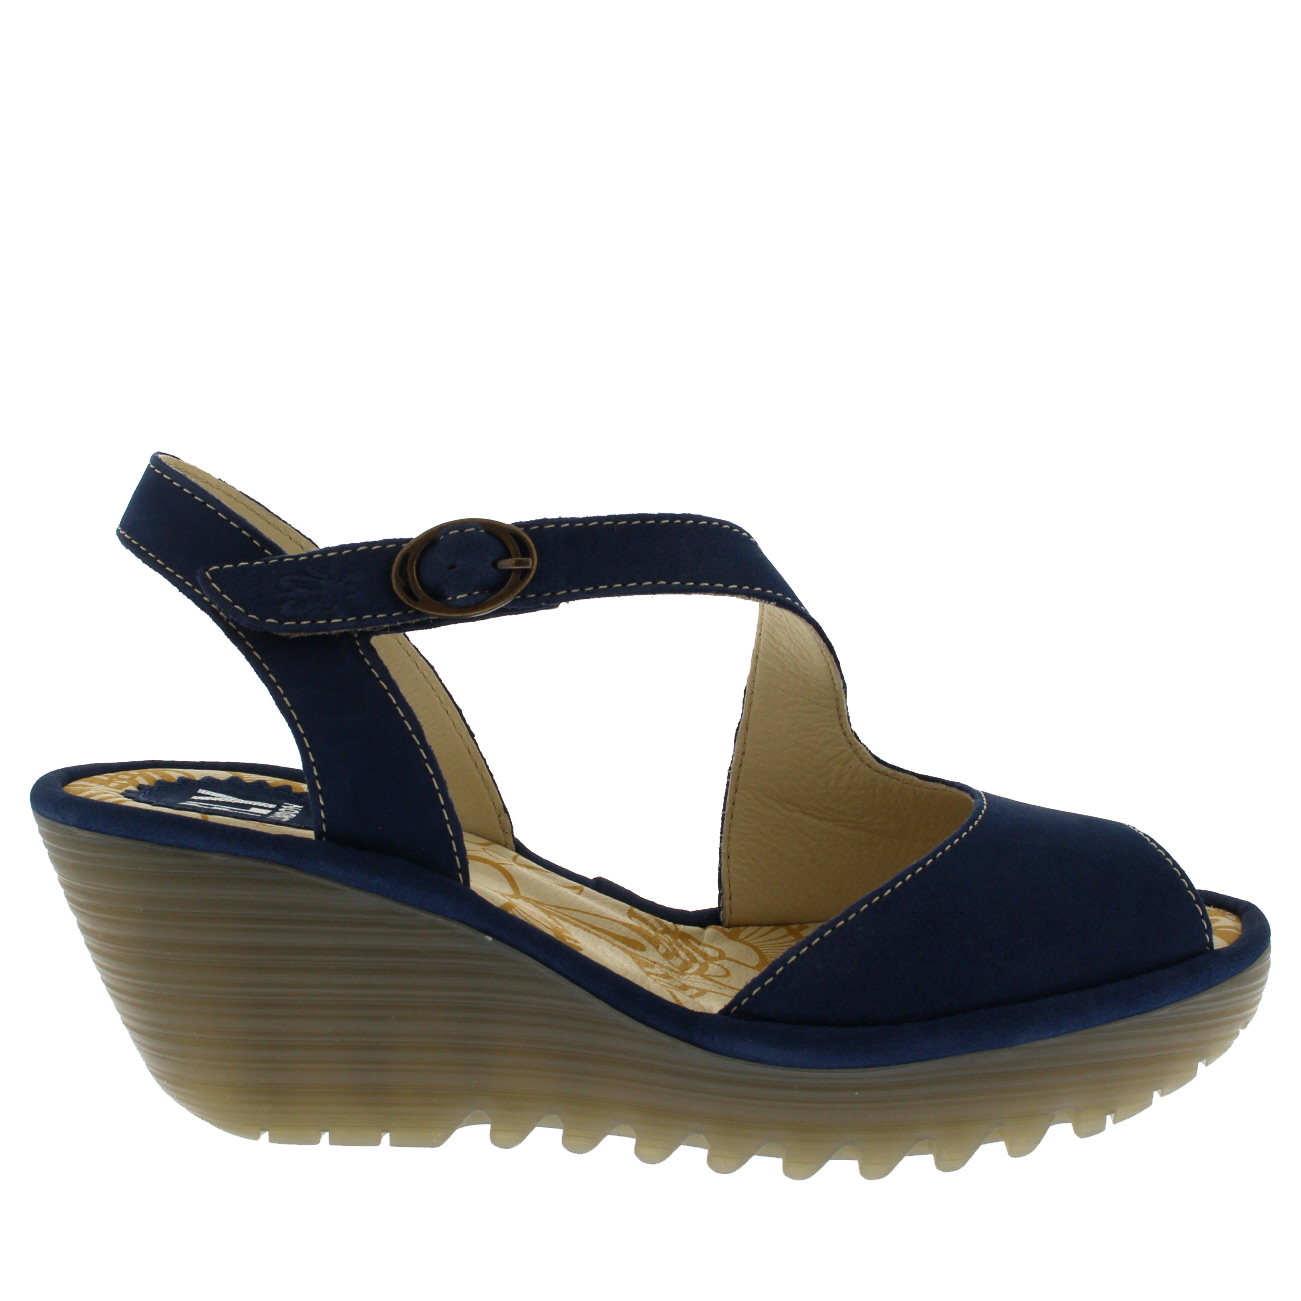 Womens-Fly-London-Yamp-Peep-Toe-Summer-Cut-Out-Buckle-Wedge-Heel-Sandals-US-5-12 thumbnail 13